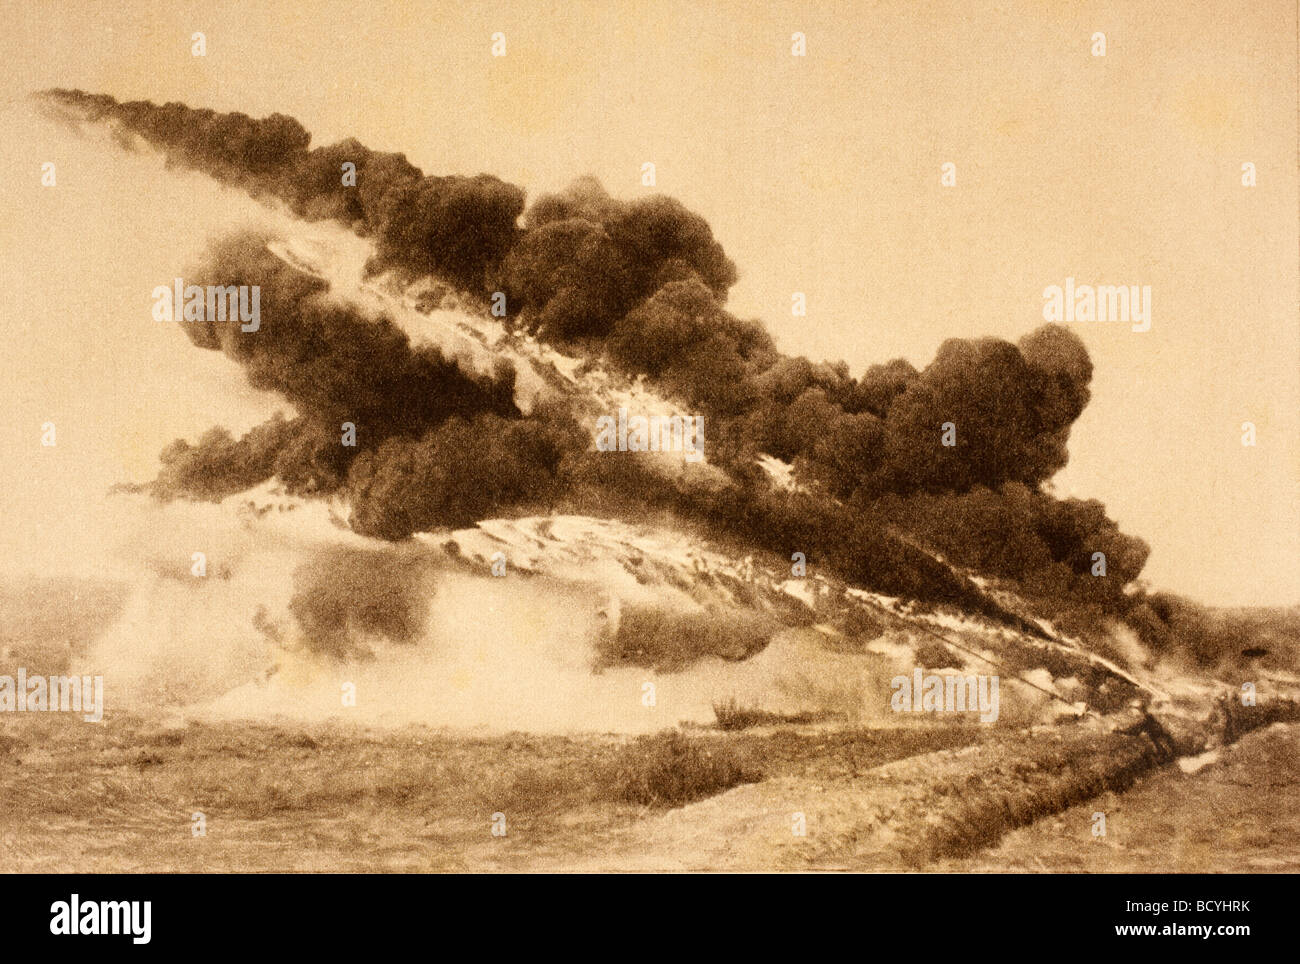 Flame throwers in action during First World War. - Stock Image